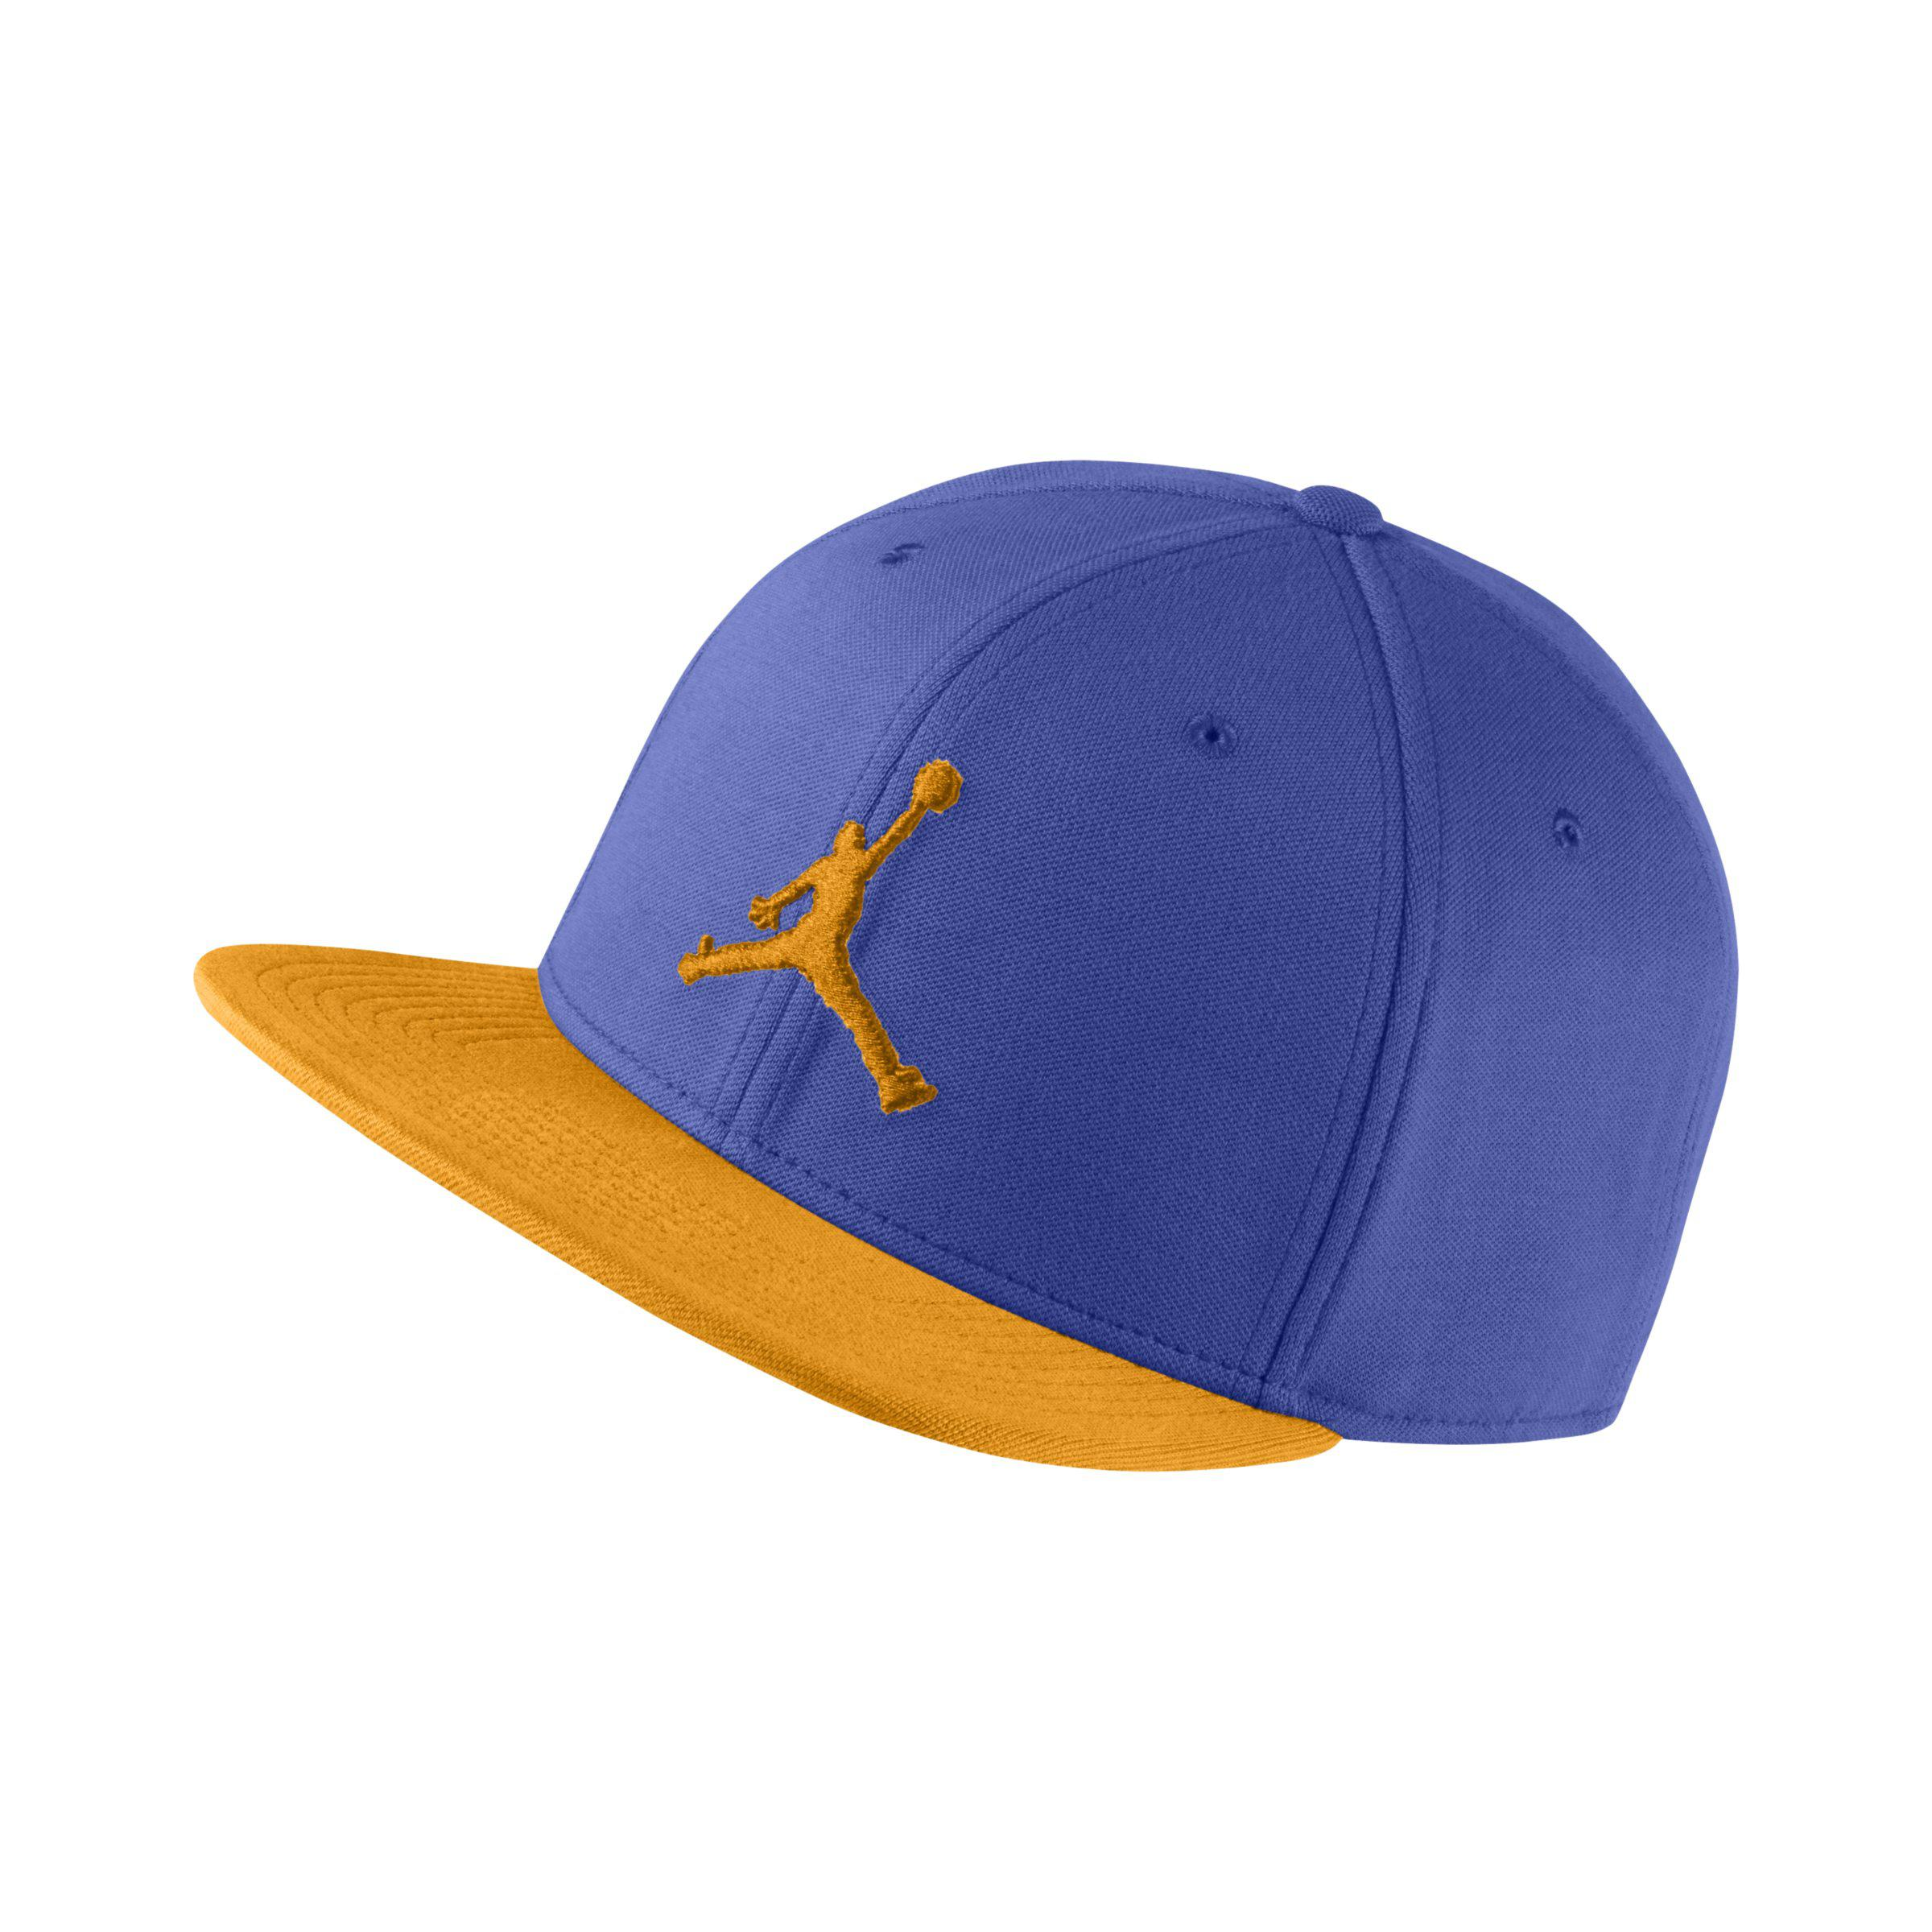 d31d92cca37fc Nike Jordan Jumpman Snapback Adjustable Hat in Blue - Lyst